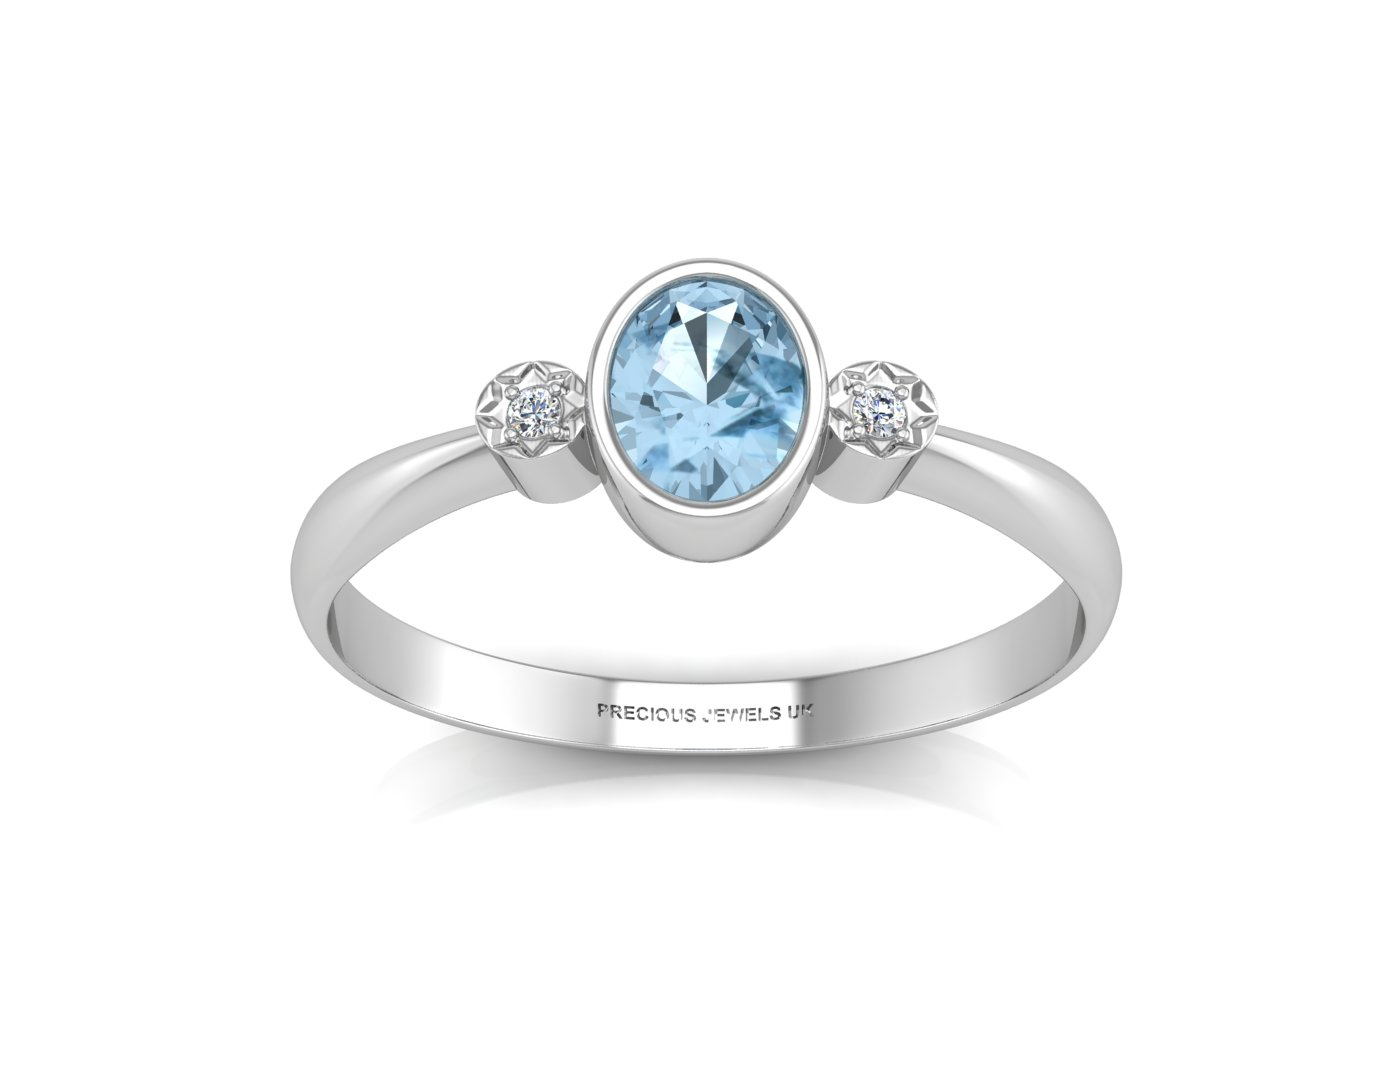 9ct White Gold Shoulder Set Diamond And Blue Topaz Ring - Image 3 of 5